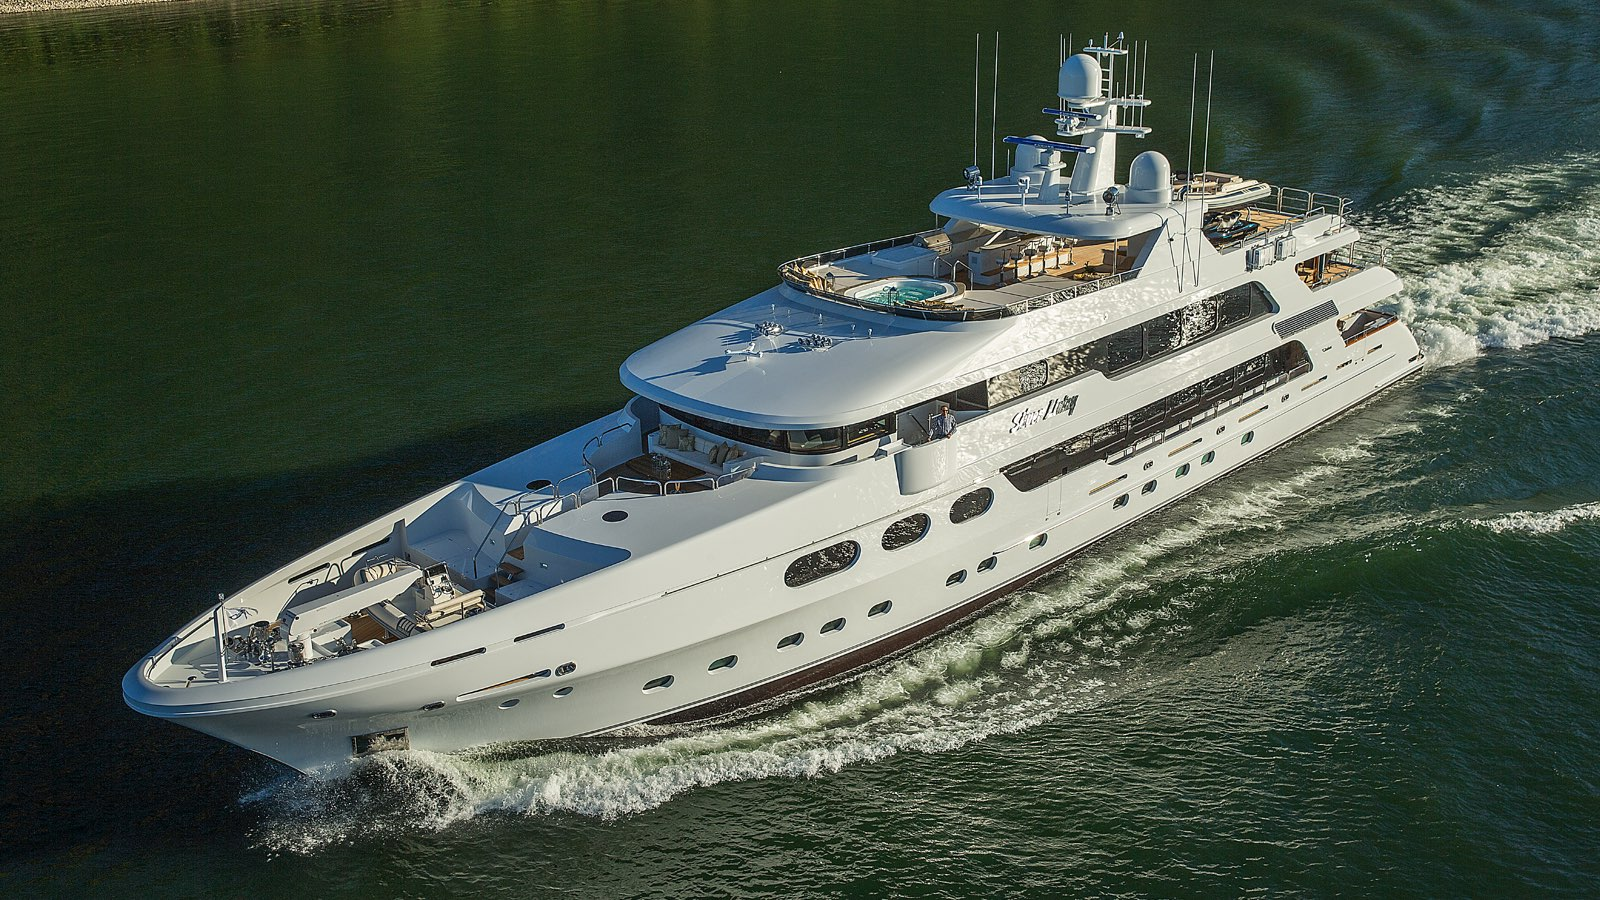 Over 100 Luxury Yachts for Sale / Mega Yachts for Sale - IYC